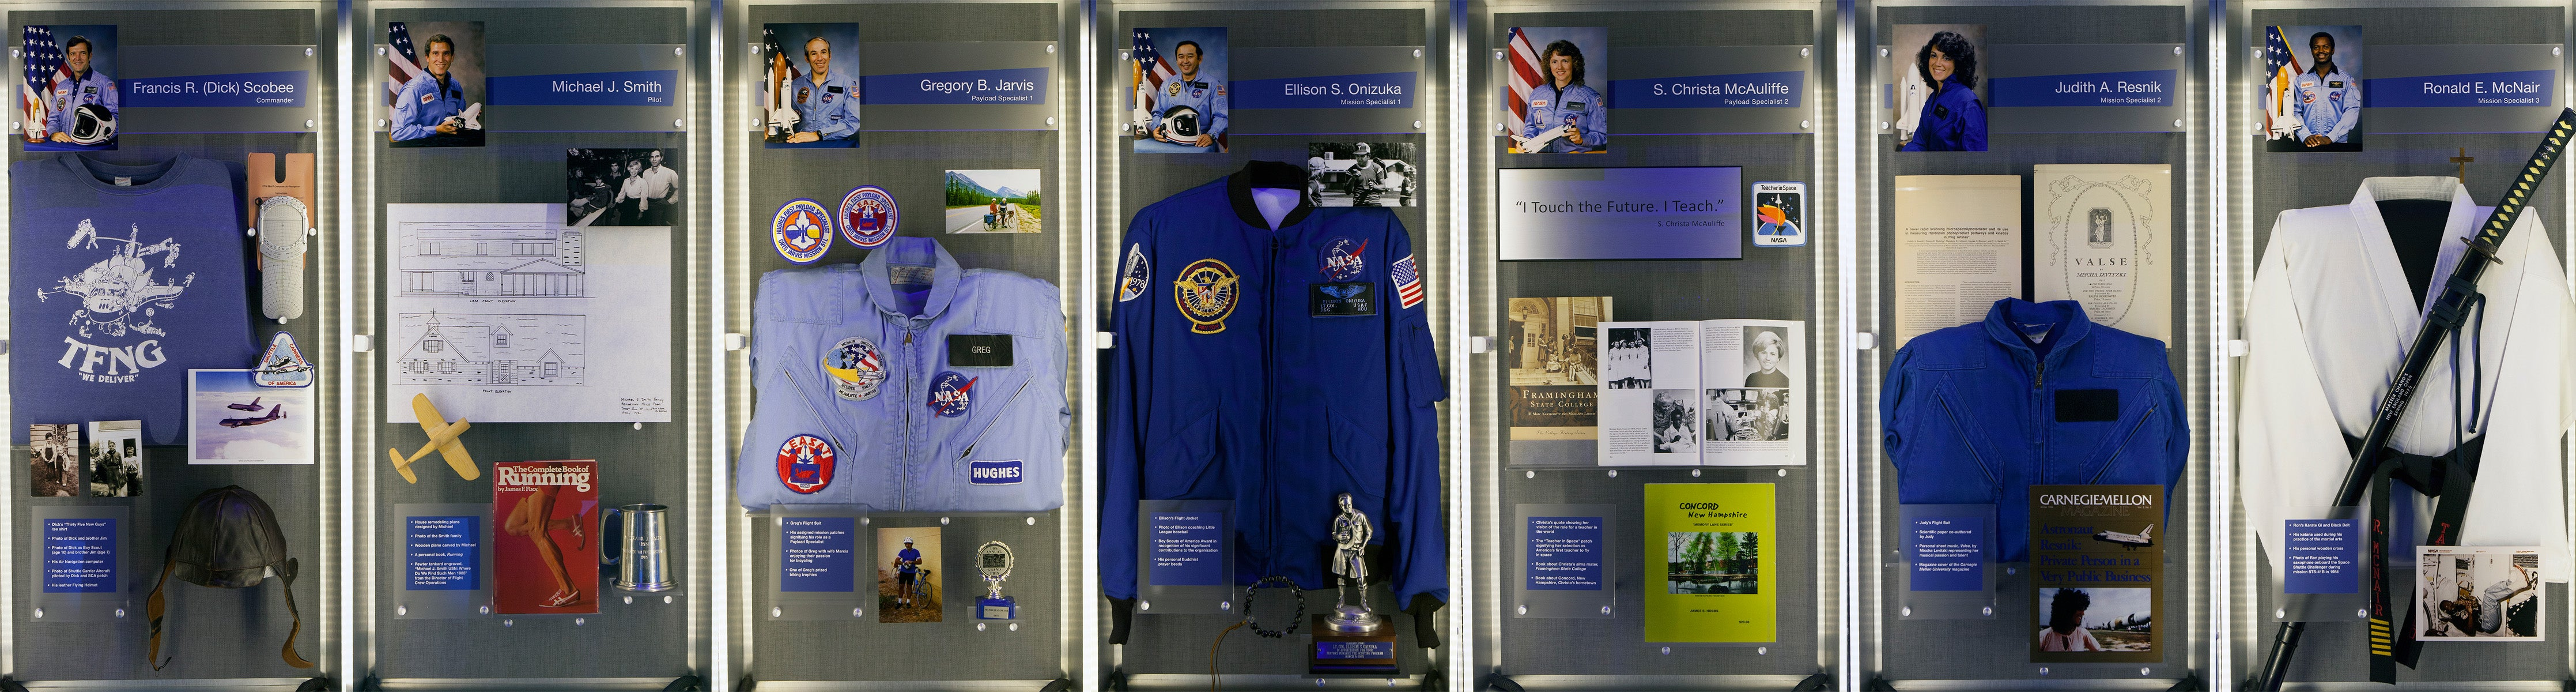 space shuttle challenger artifacts - photo #14